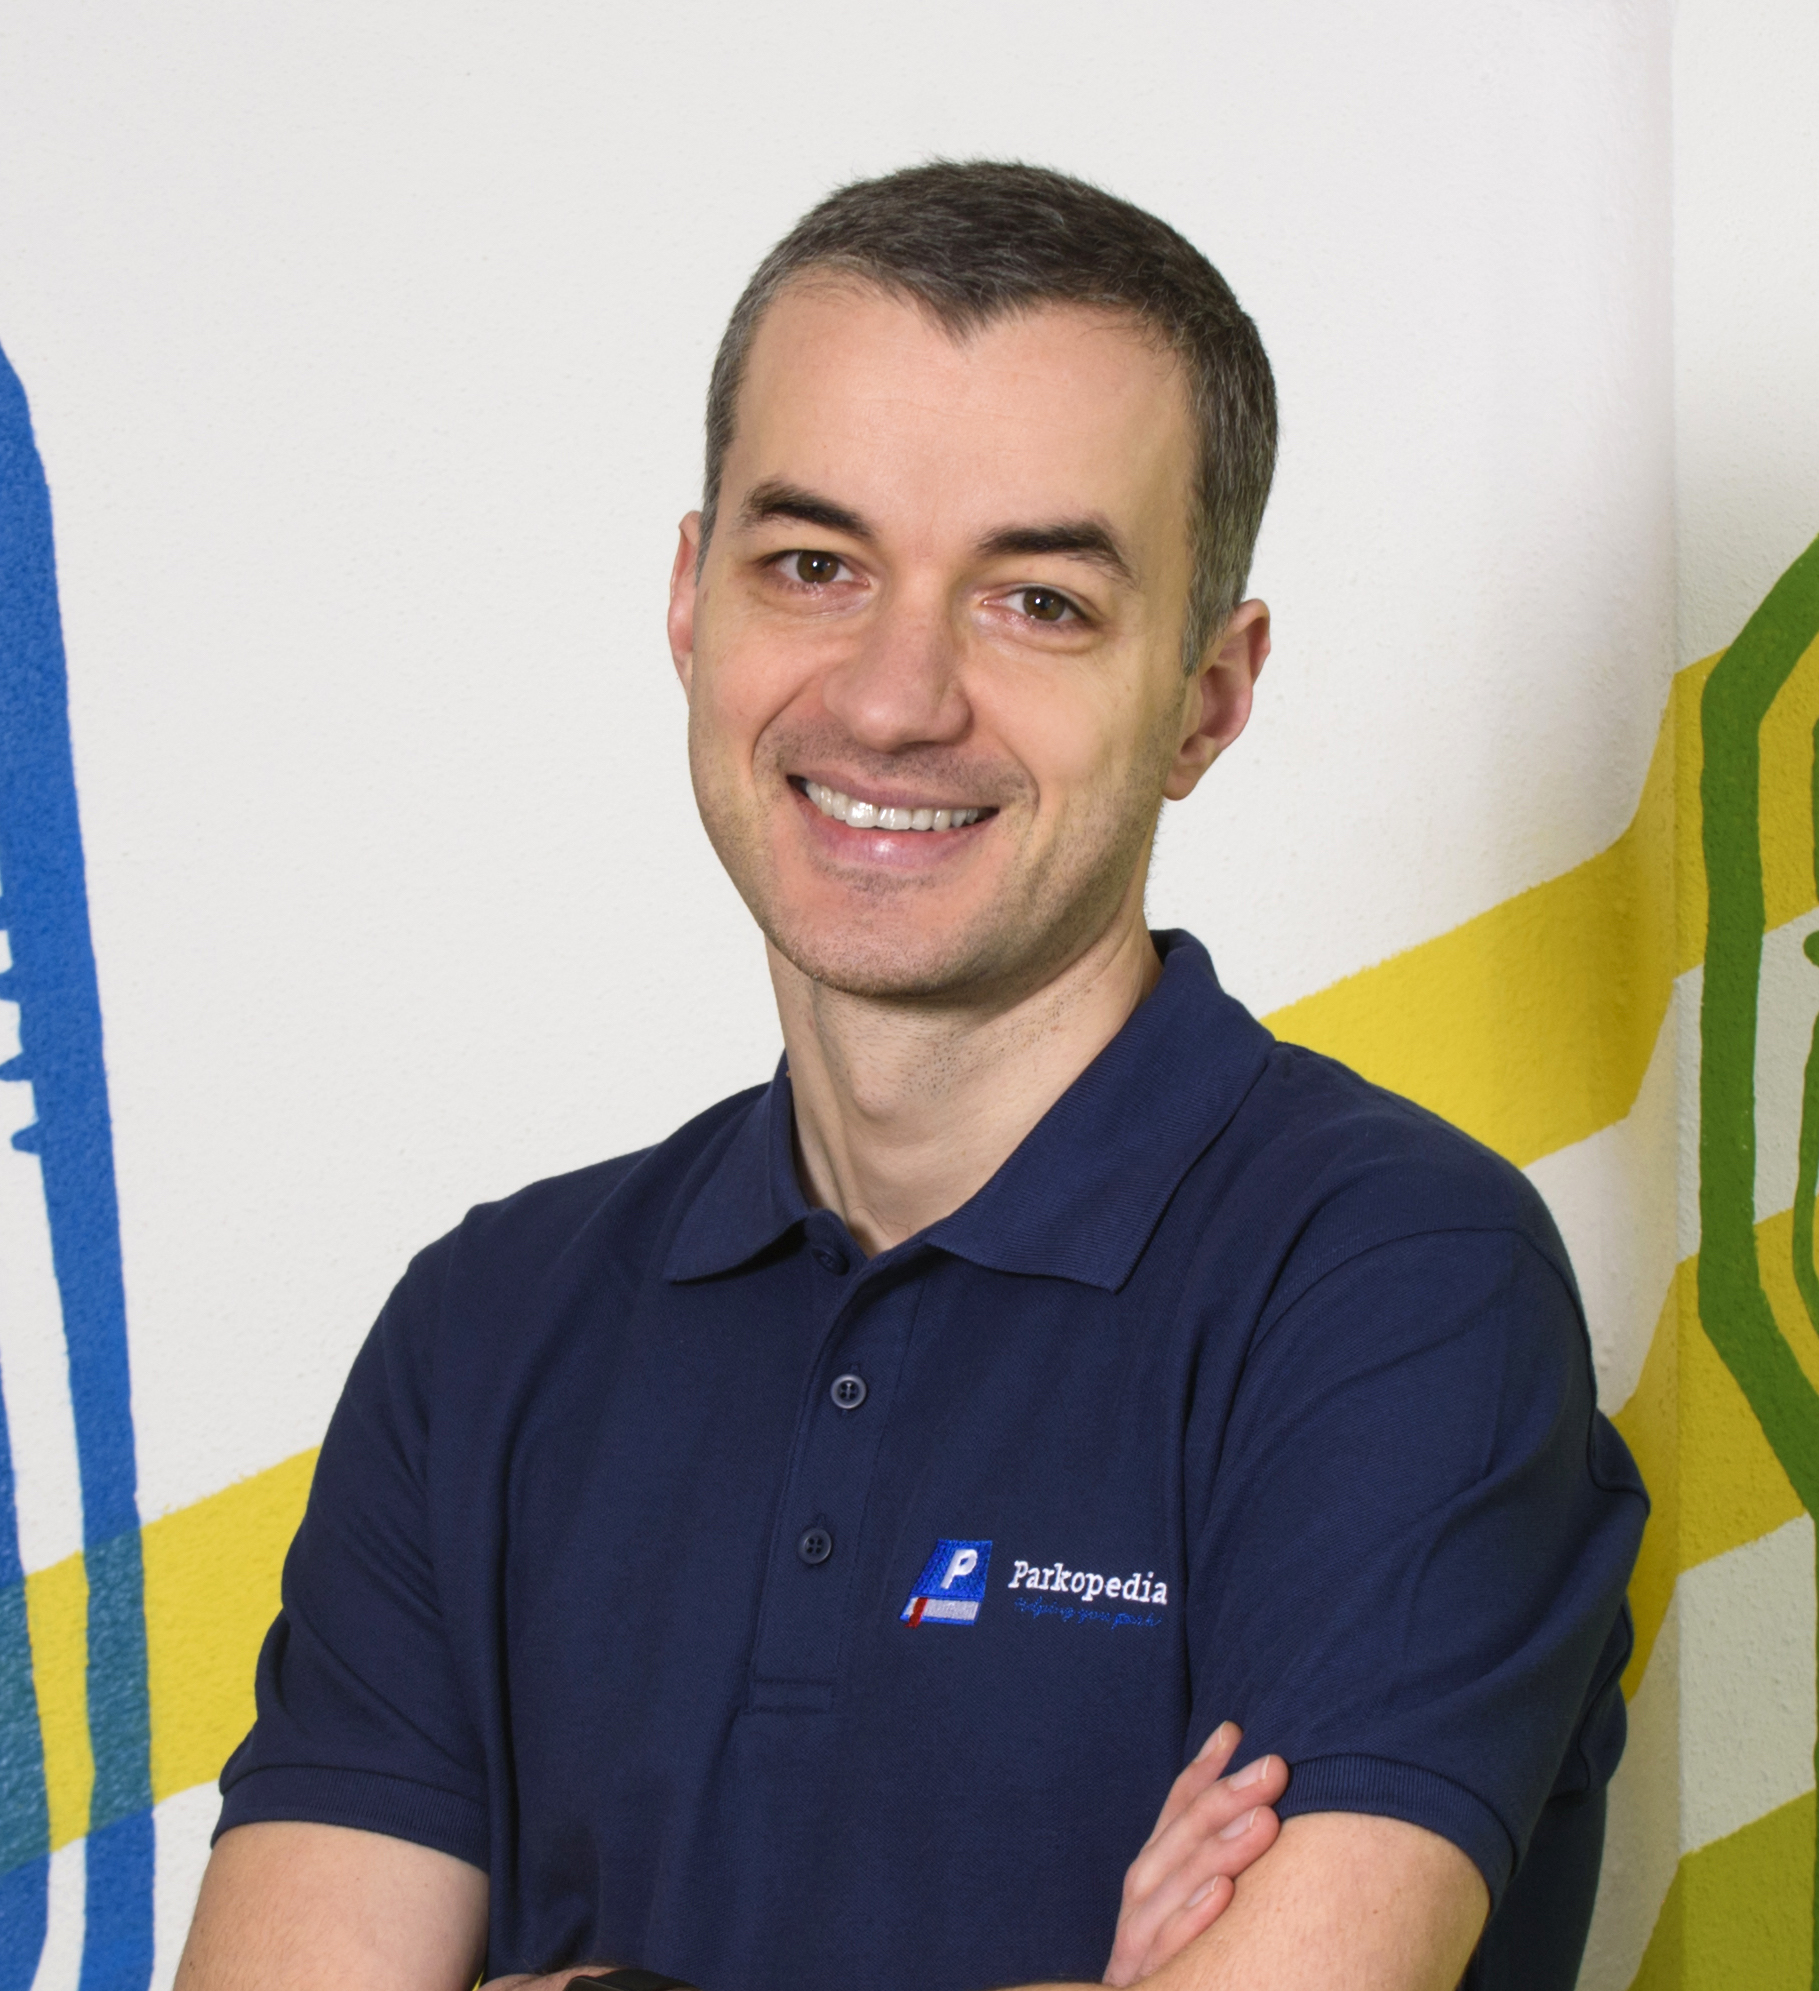 Eugene Tsyrklevich, Founder & CEO of Parkopedia